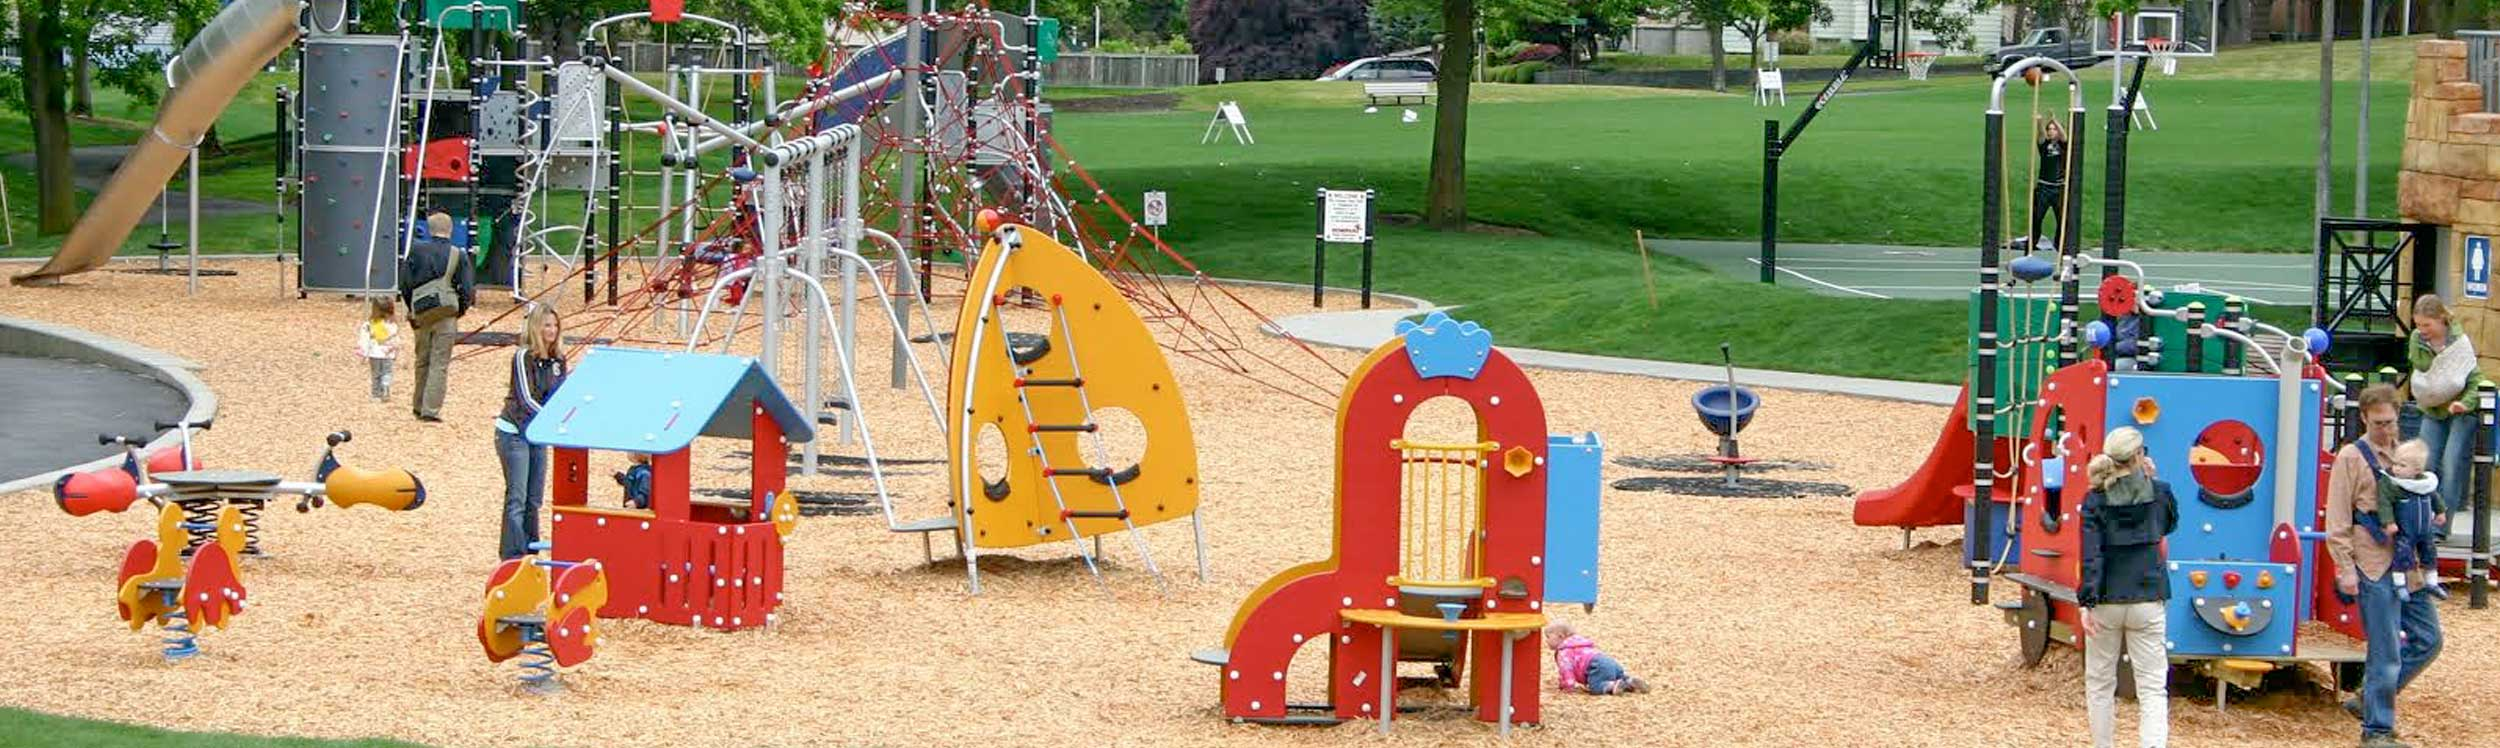 Playground and park equipment for every age